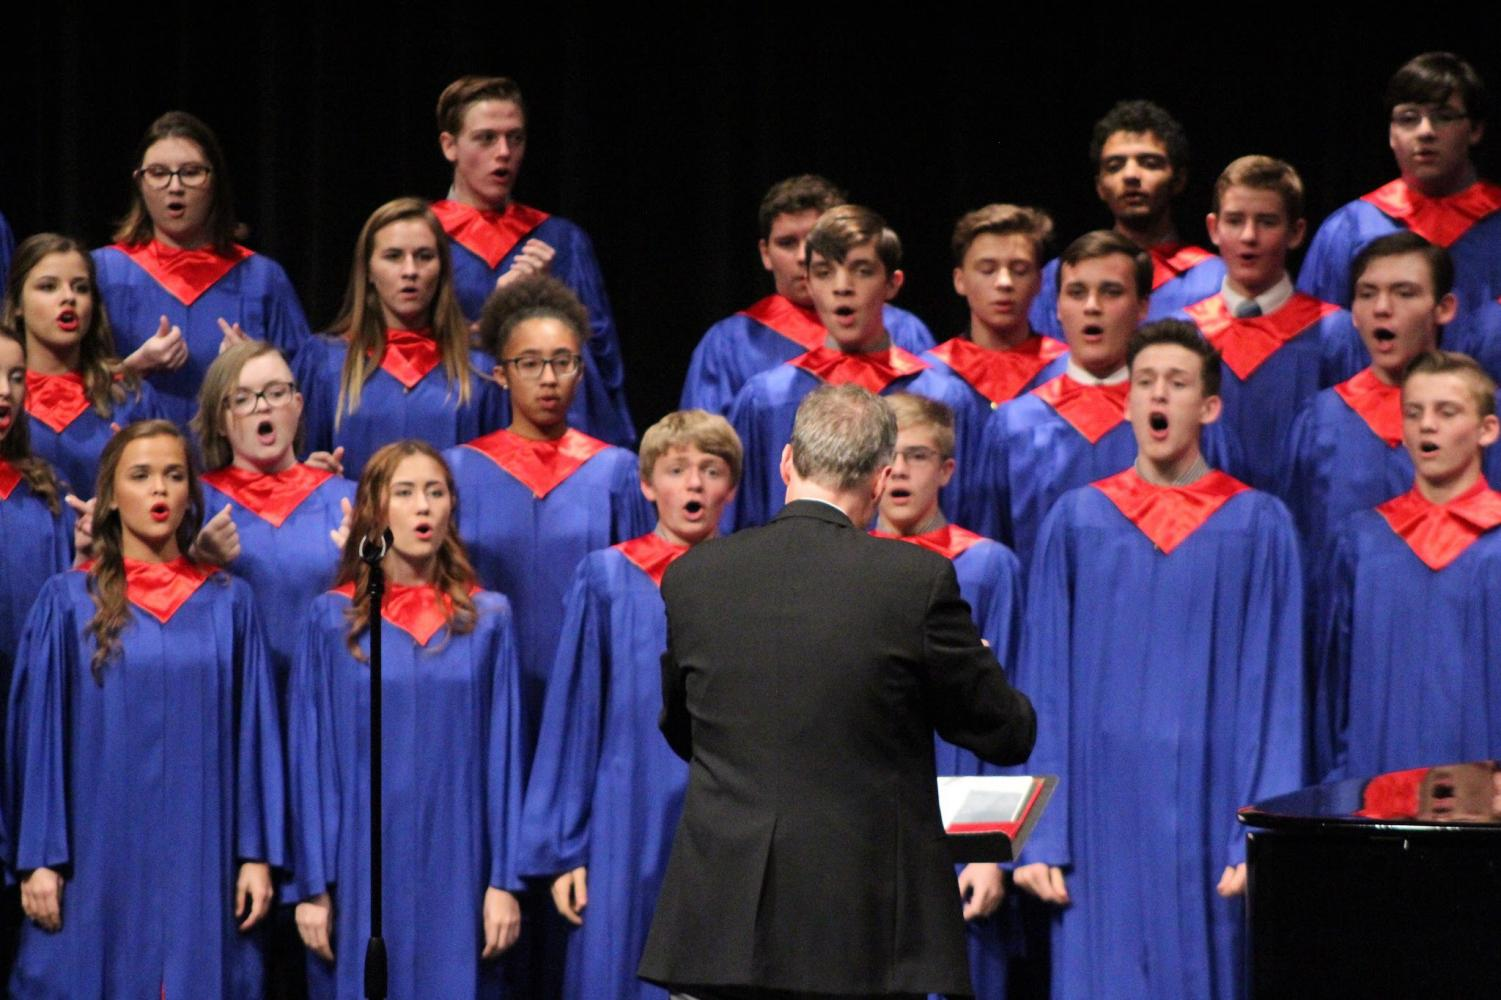 Mr. Matt King directed his Platteview Concert Choir for the Fall Concert on November 1st, 2018.